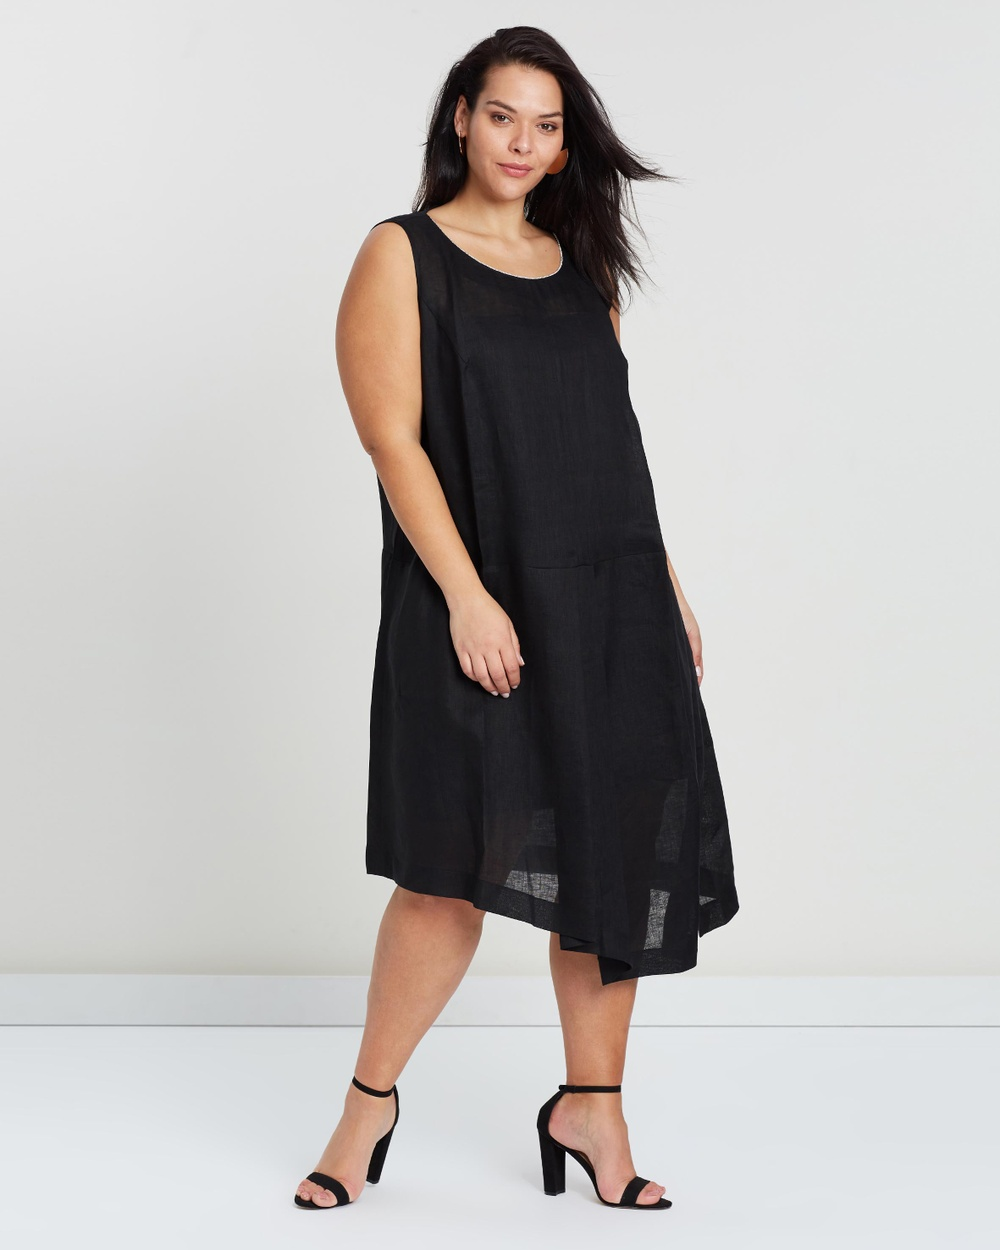 Persona by M.Rinaldi Dialogo Dress Dresses Nero Dialogo Dress